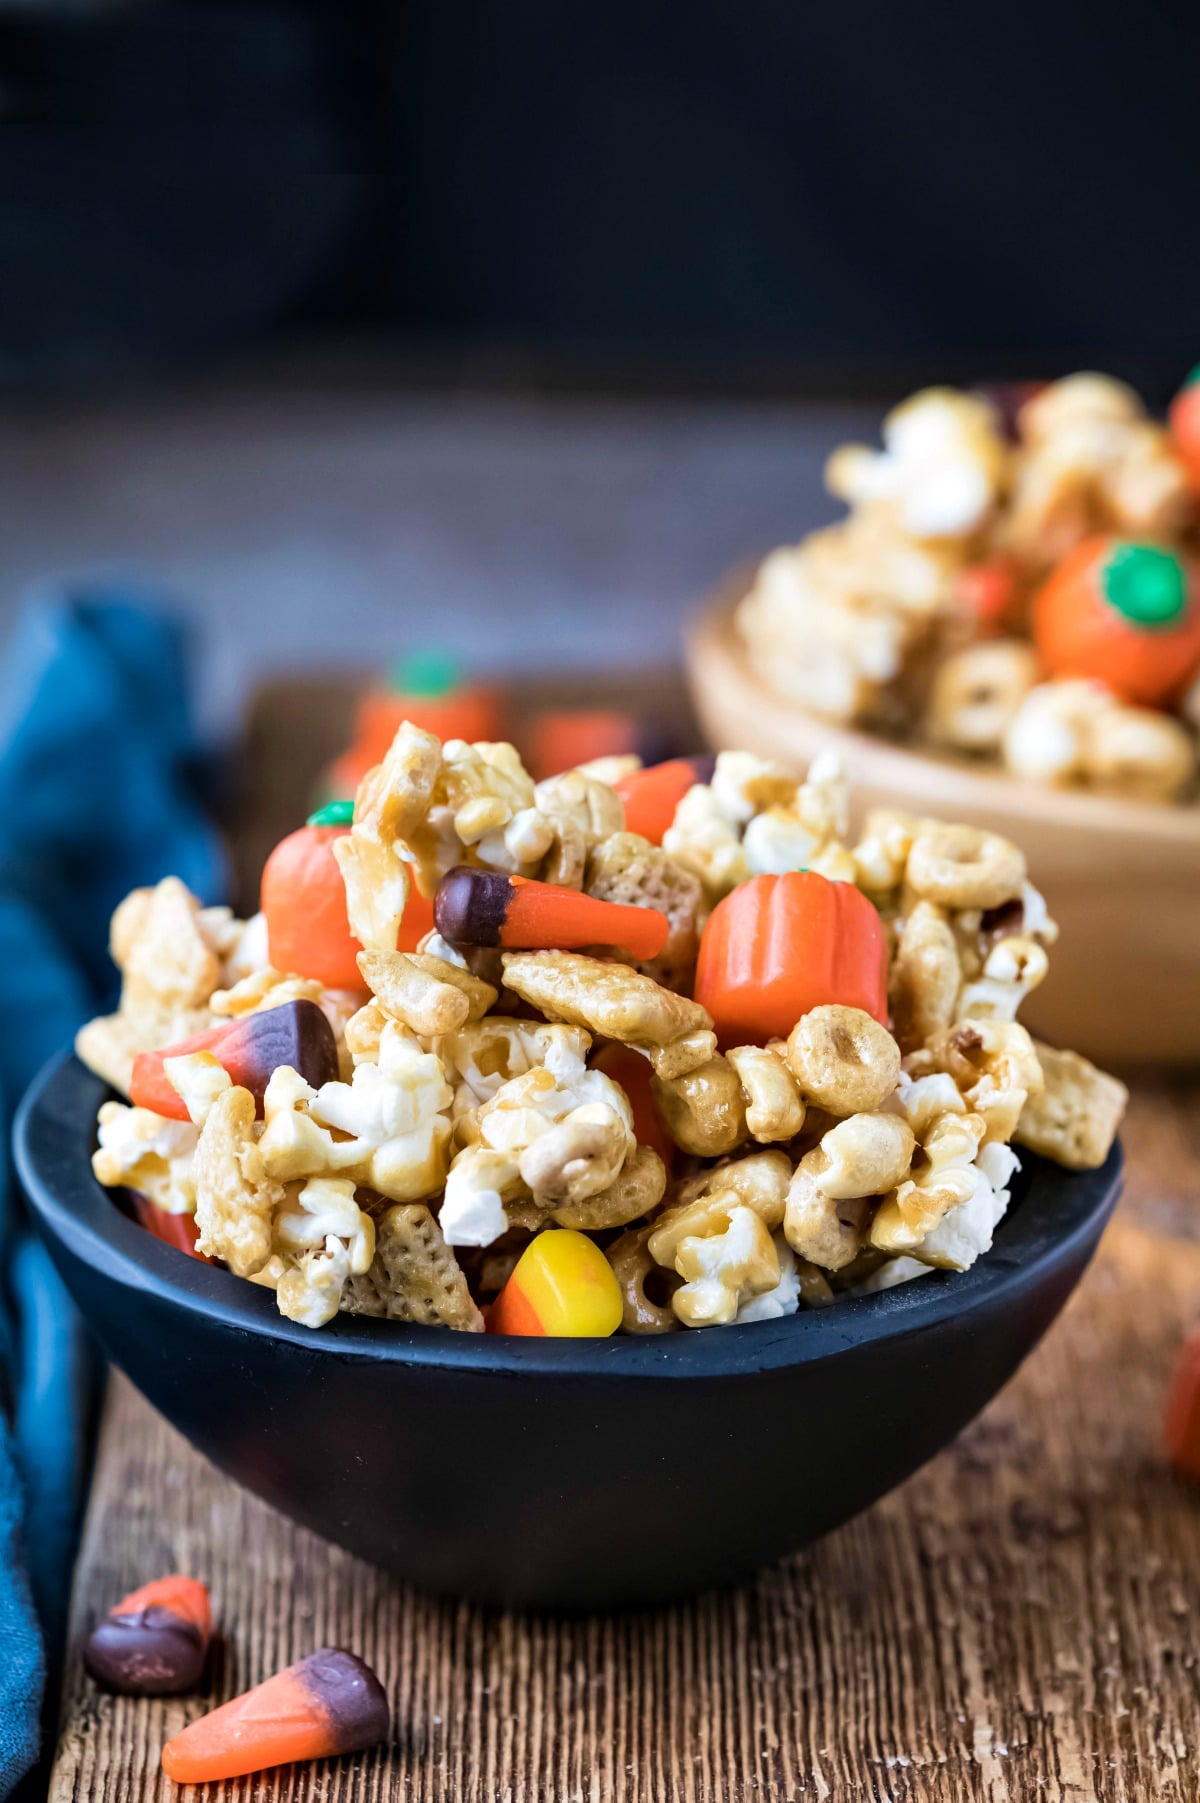 Halloween snack mix in a black wooden bowl on a wooden cutting board